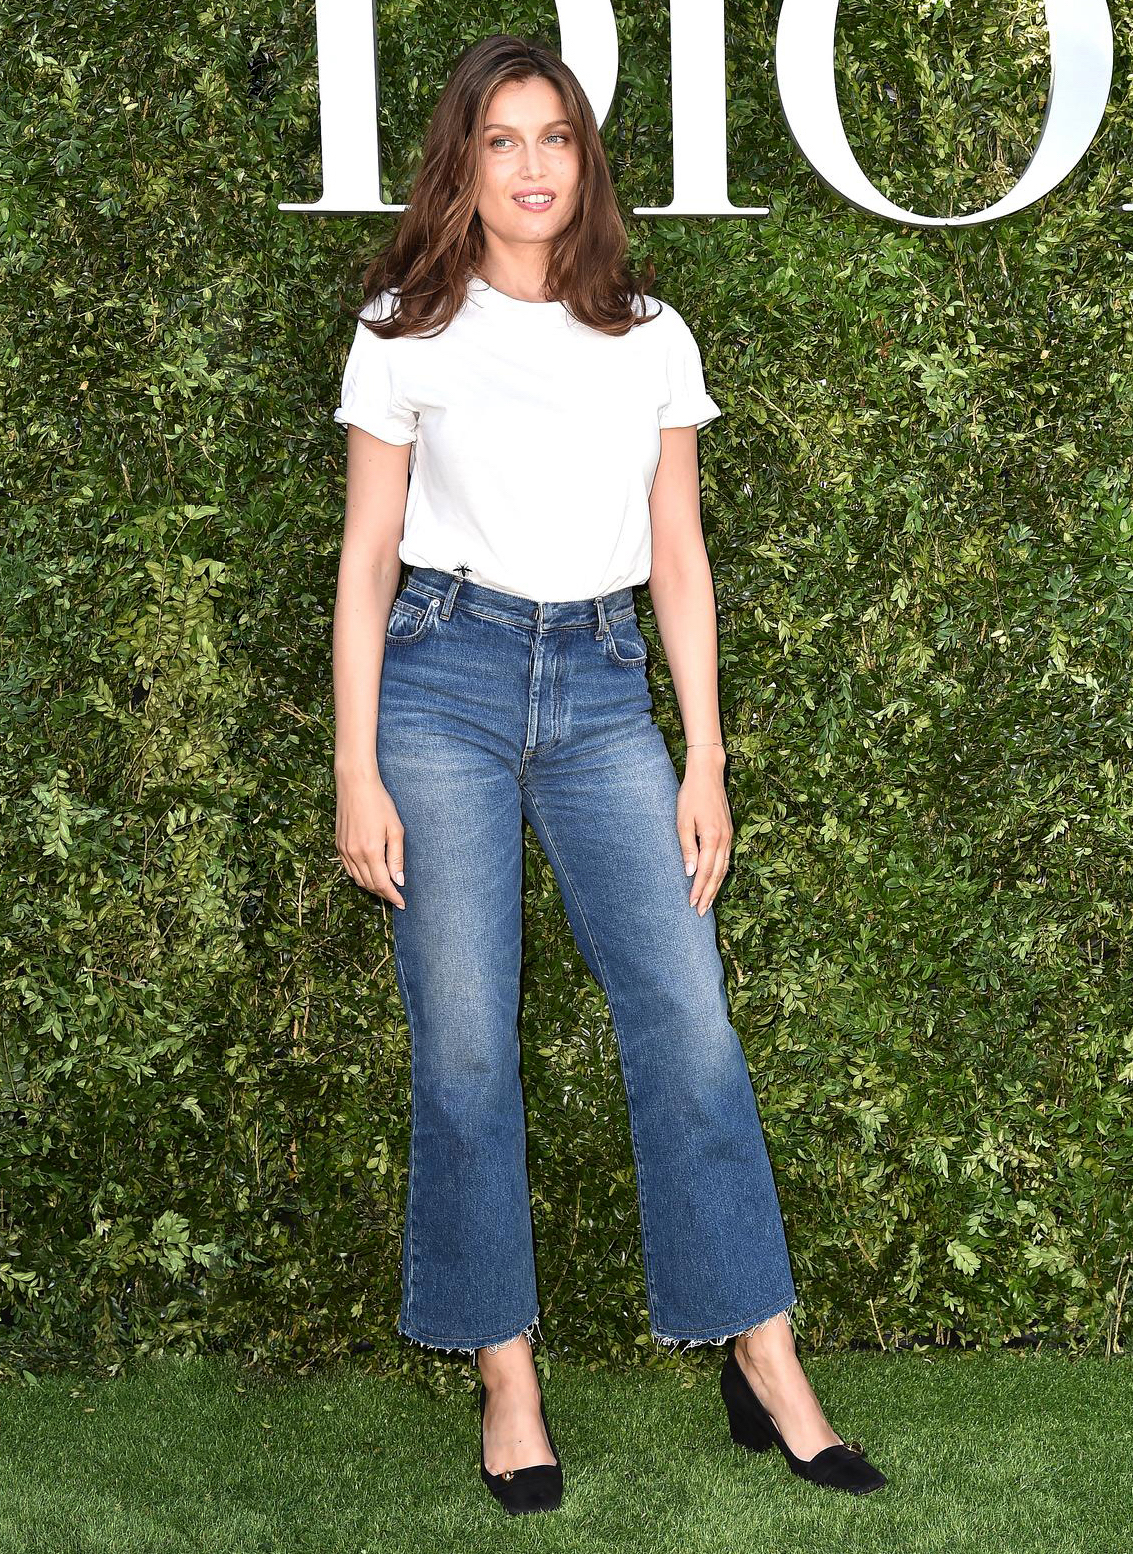 French Outfit Idea — Laetitia Casta in a white t-shirt, raw-hem flared jeans, and black square-toe heels